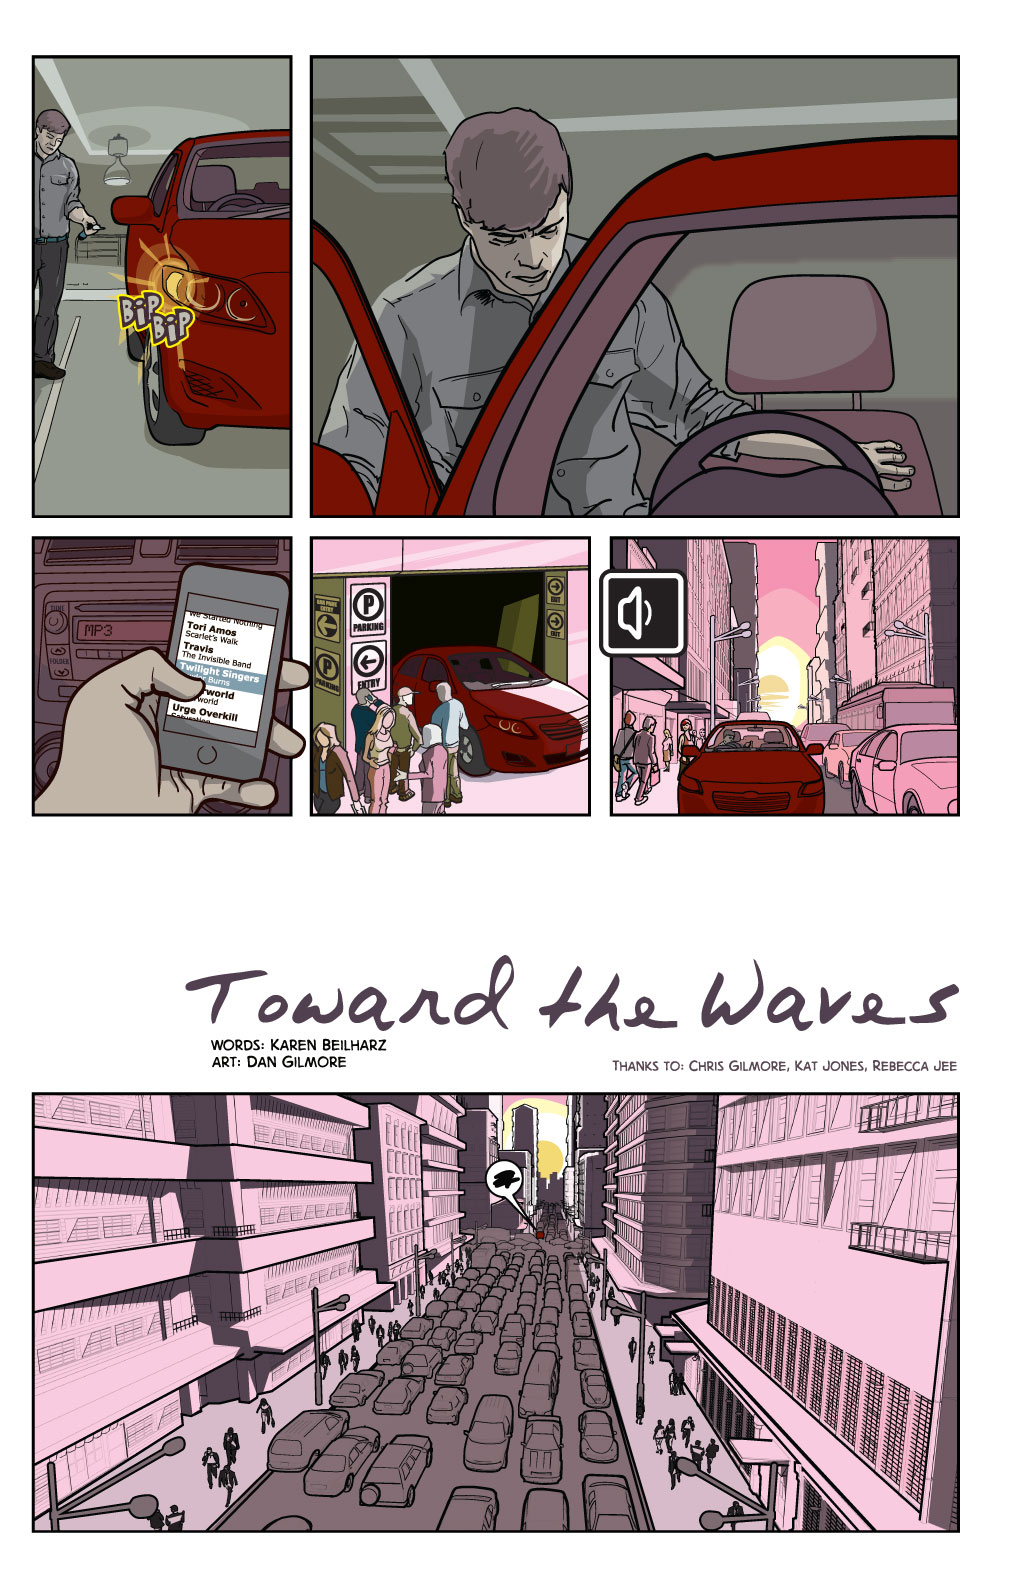 Toward-the-waves-1